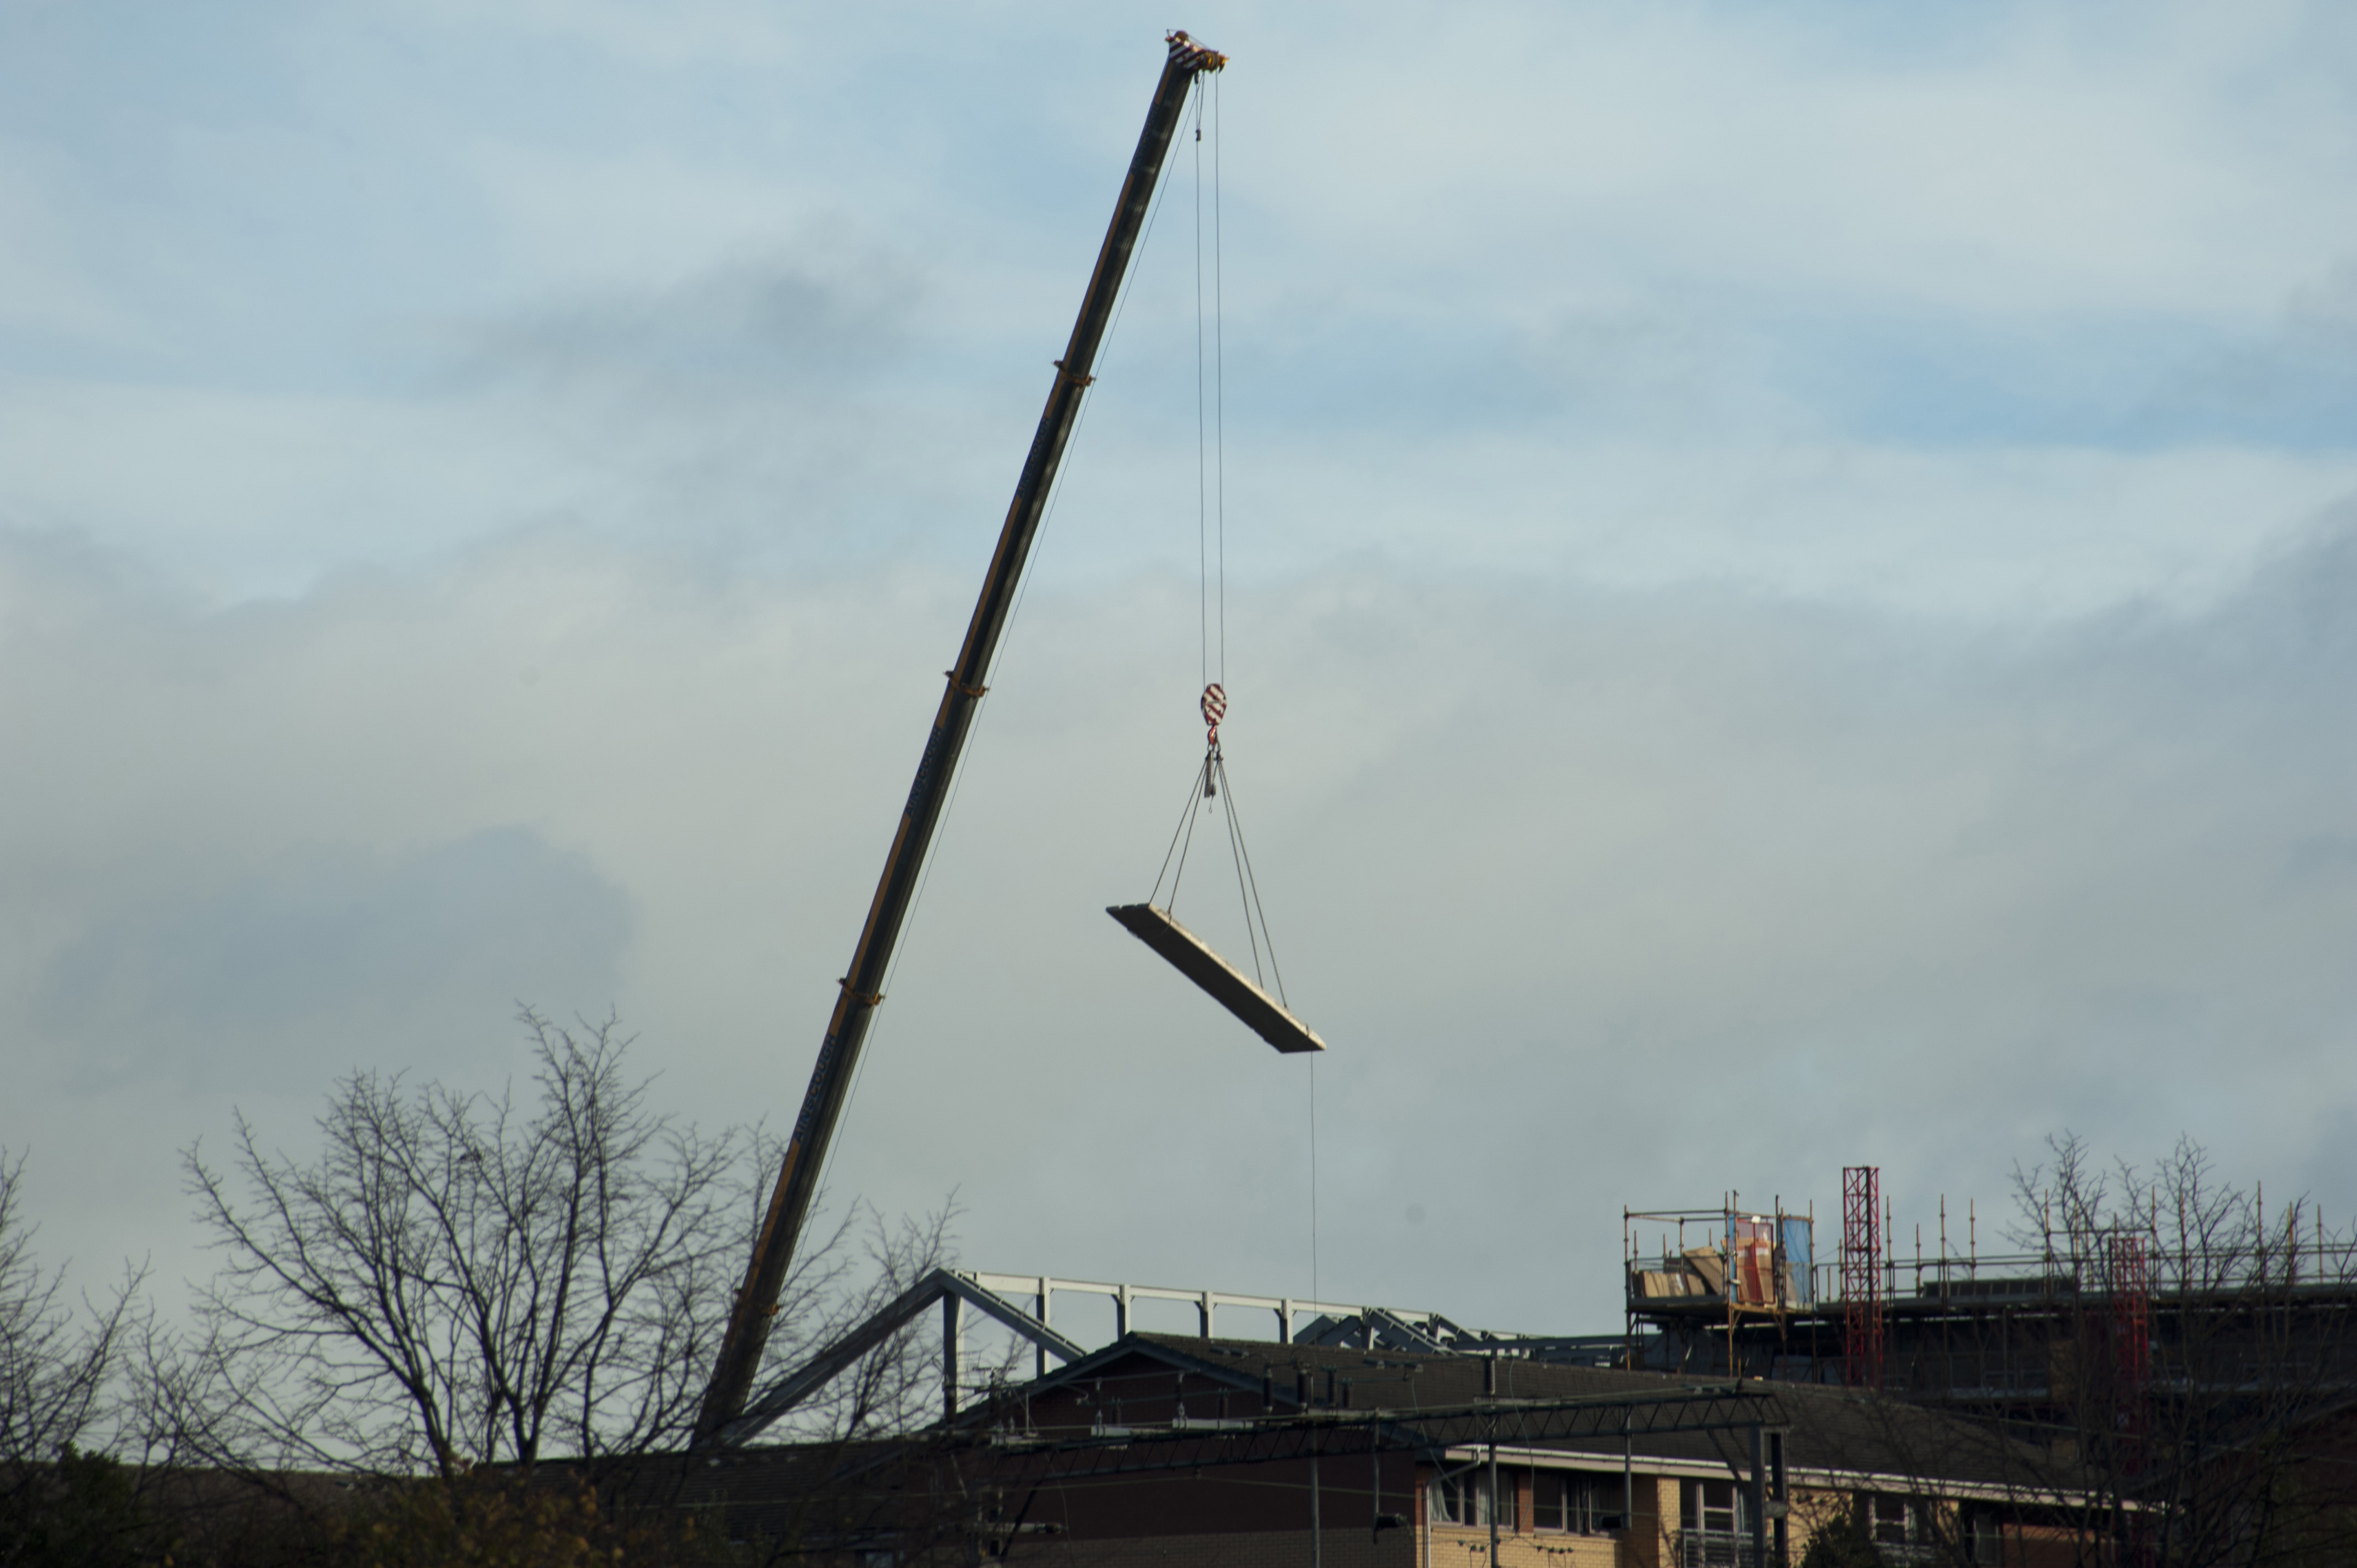 Industrial crane lifting a load raising a beam at a construction site for a commercial building silhouetted against a cloudy sky